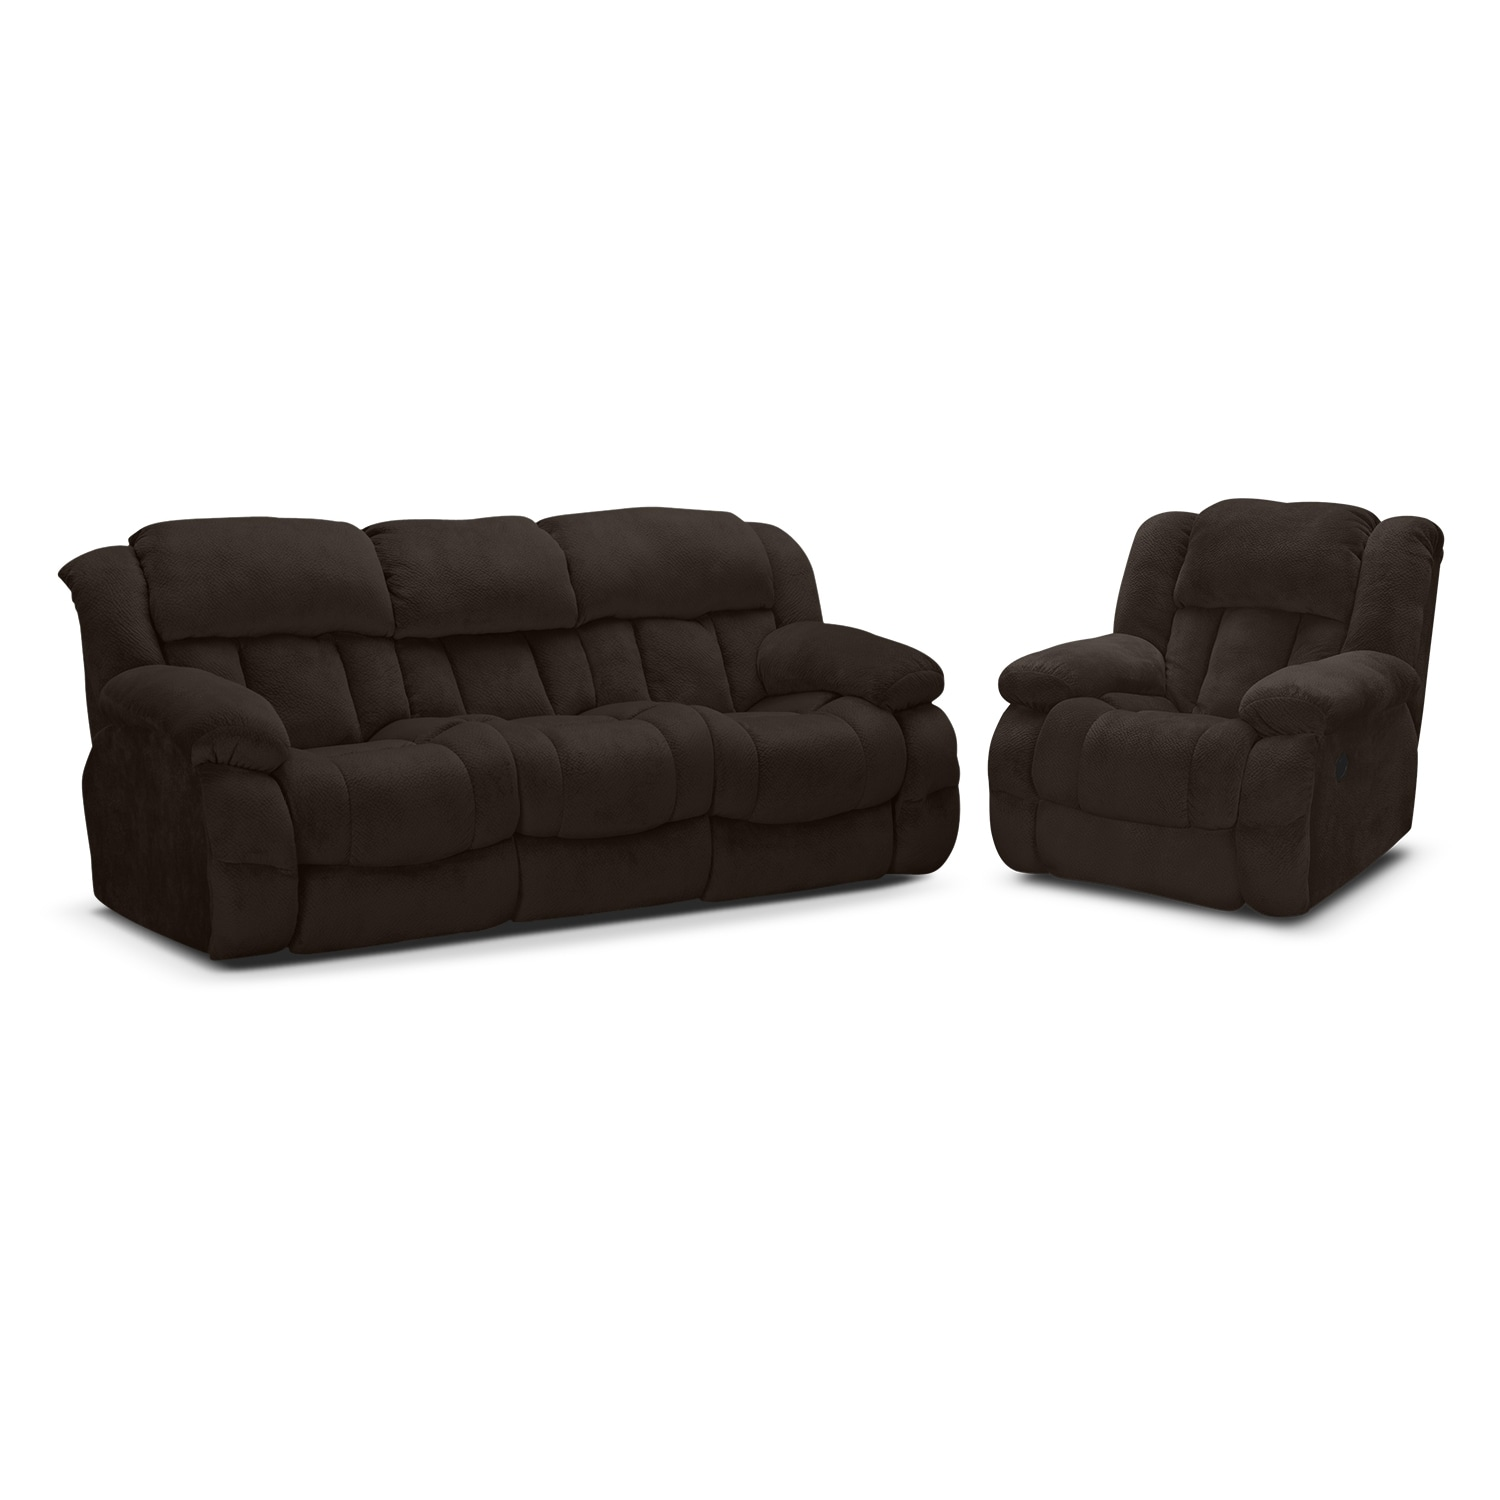 Living Room Furniture - Park City Dual Reclining Sofa and Glider Recliner Set - Chocolate